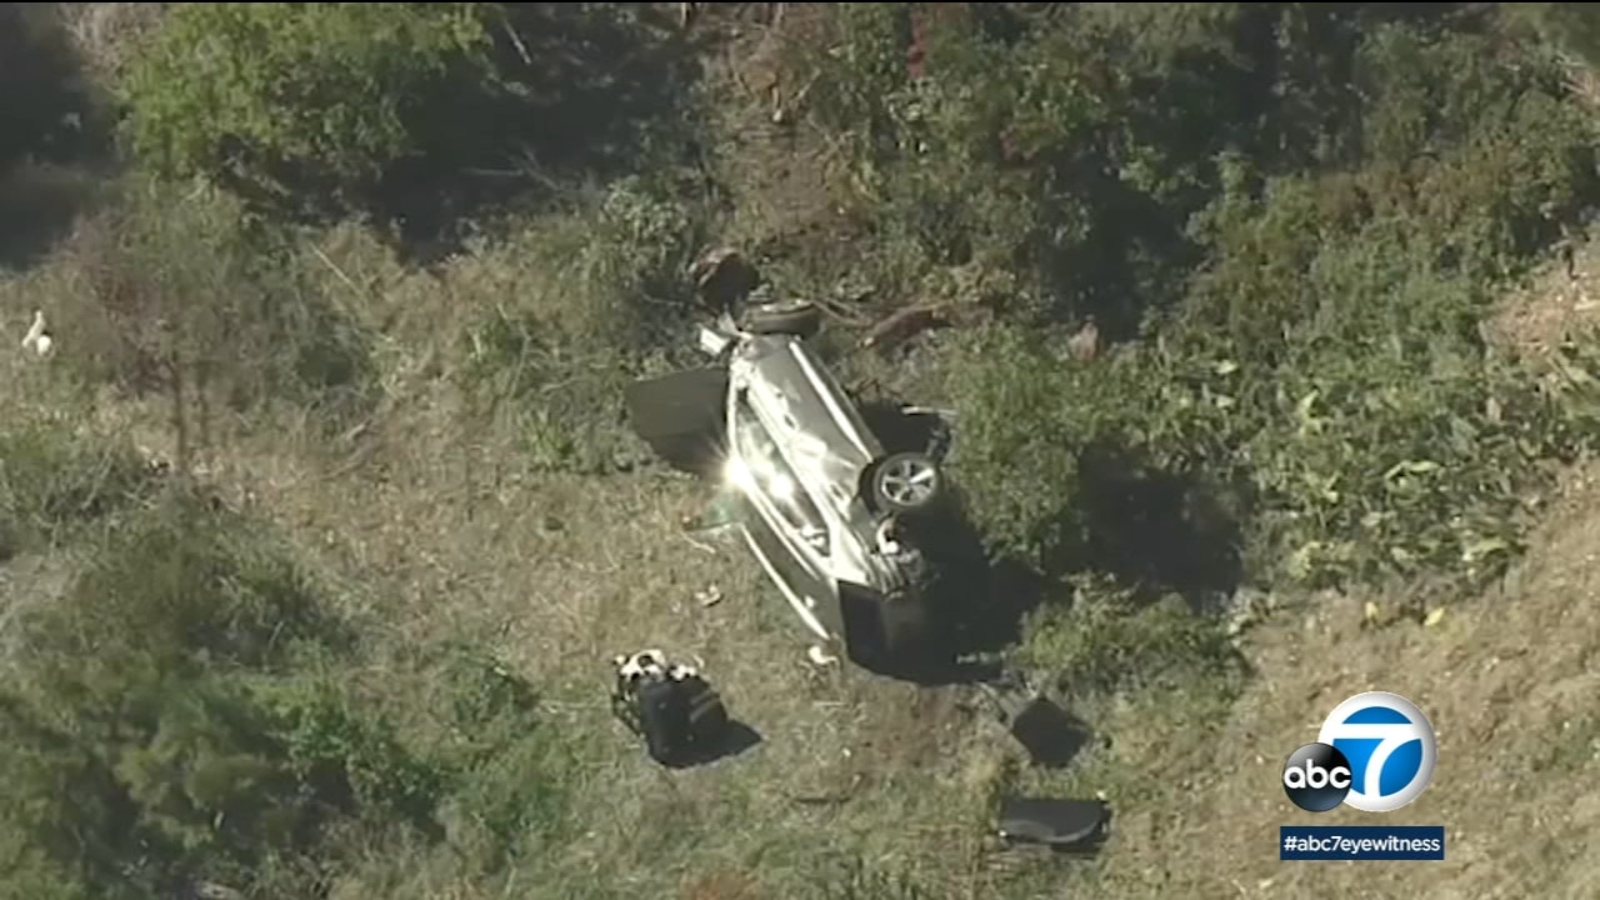 Stretch of road where Tiger Woods crashed is known for accidents, high speeds